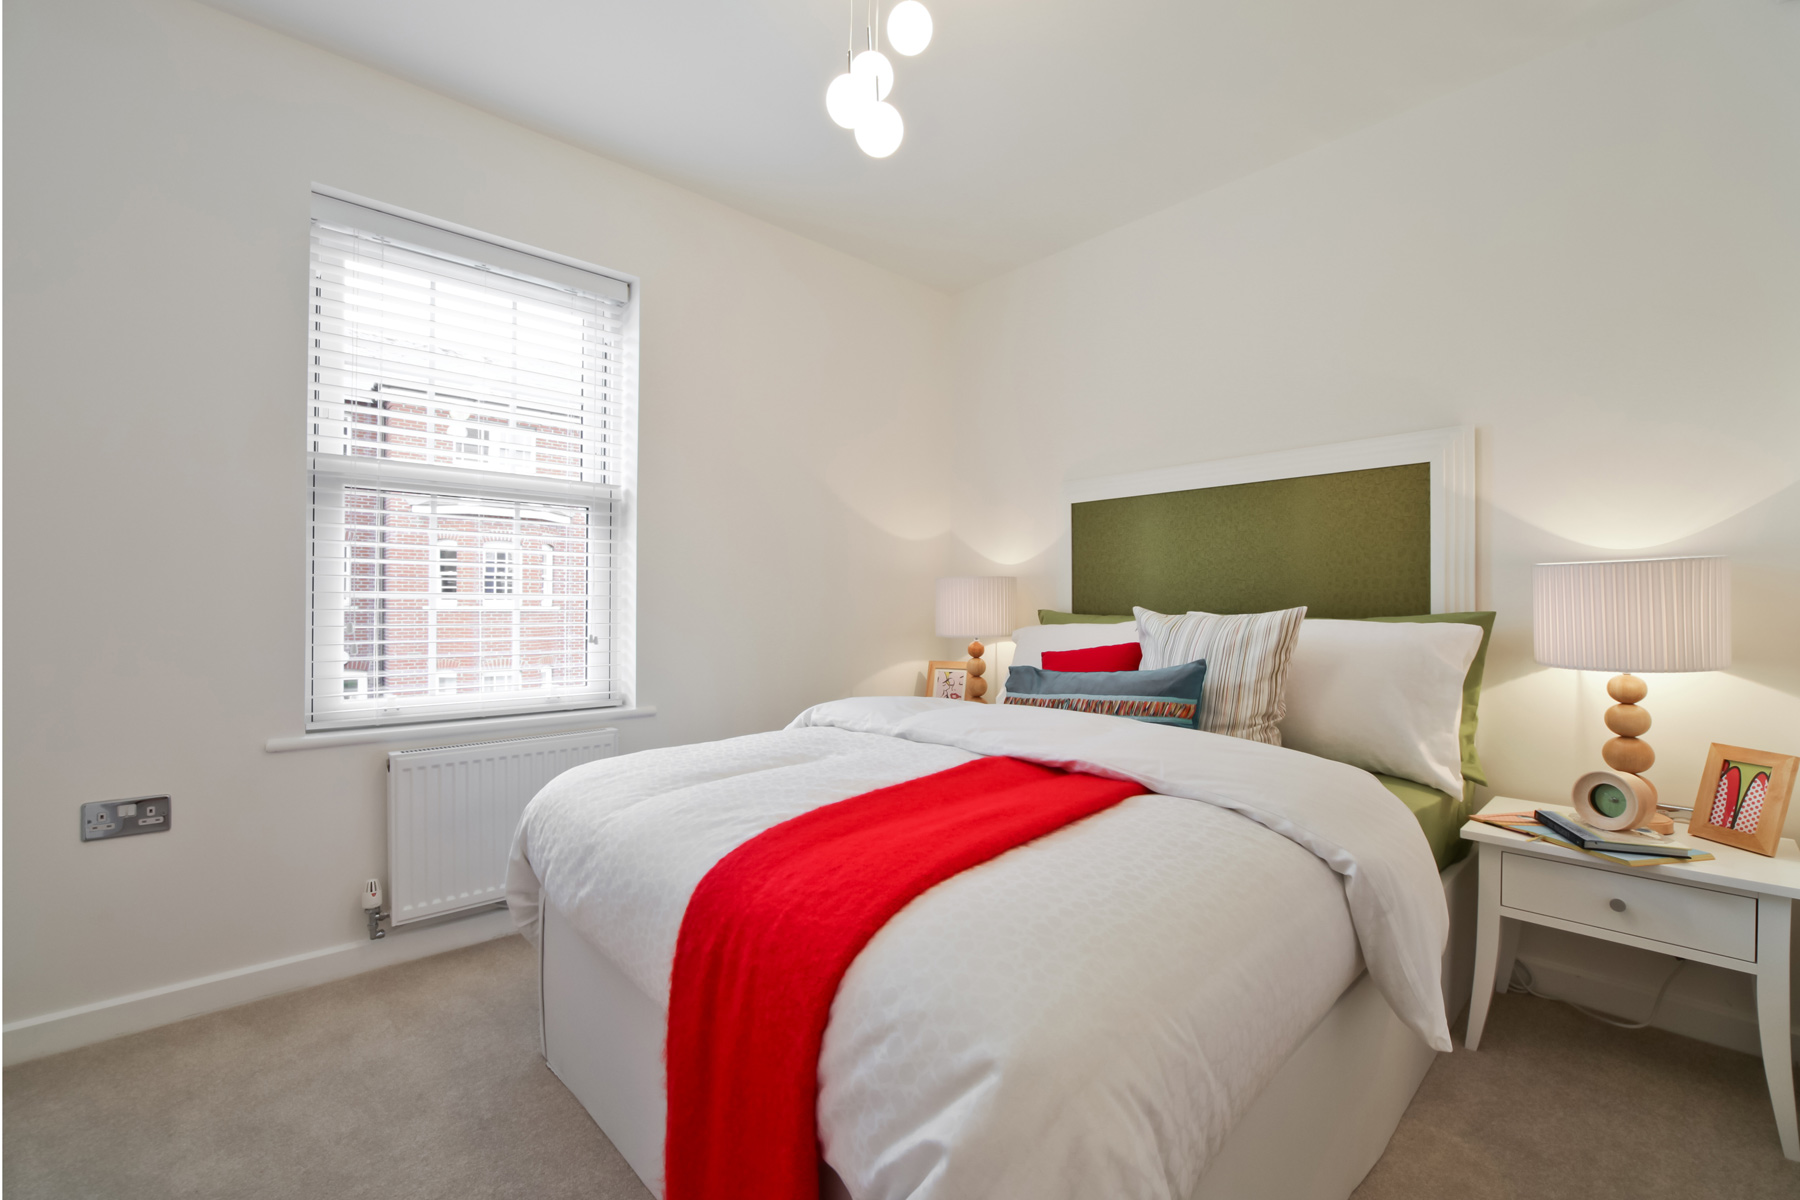 Typical Taylor Wimpey apartment second bedroom.